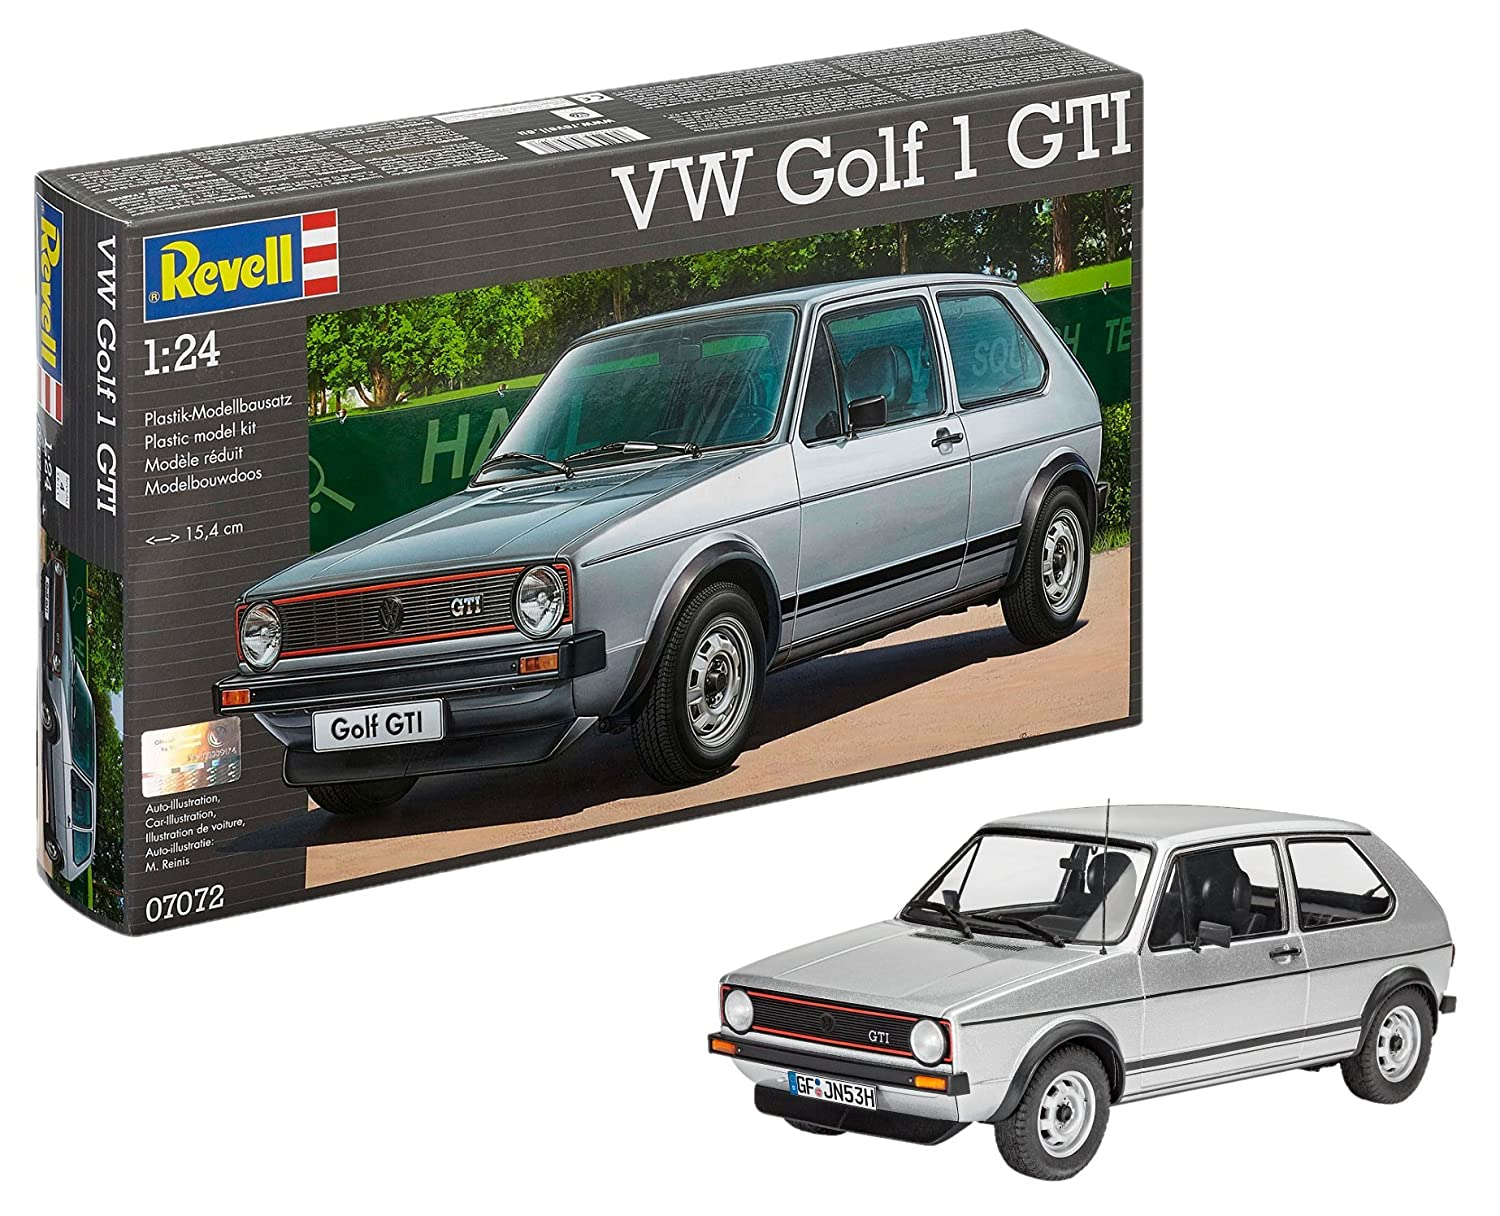 Revell Revell-07072 Volkswagen Maqueta VW Golf 1 GTI, Kit Modelo, Escala 1:24 (07072), Color Plata (